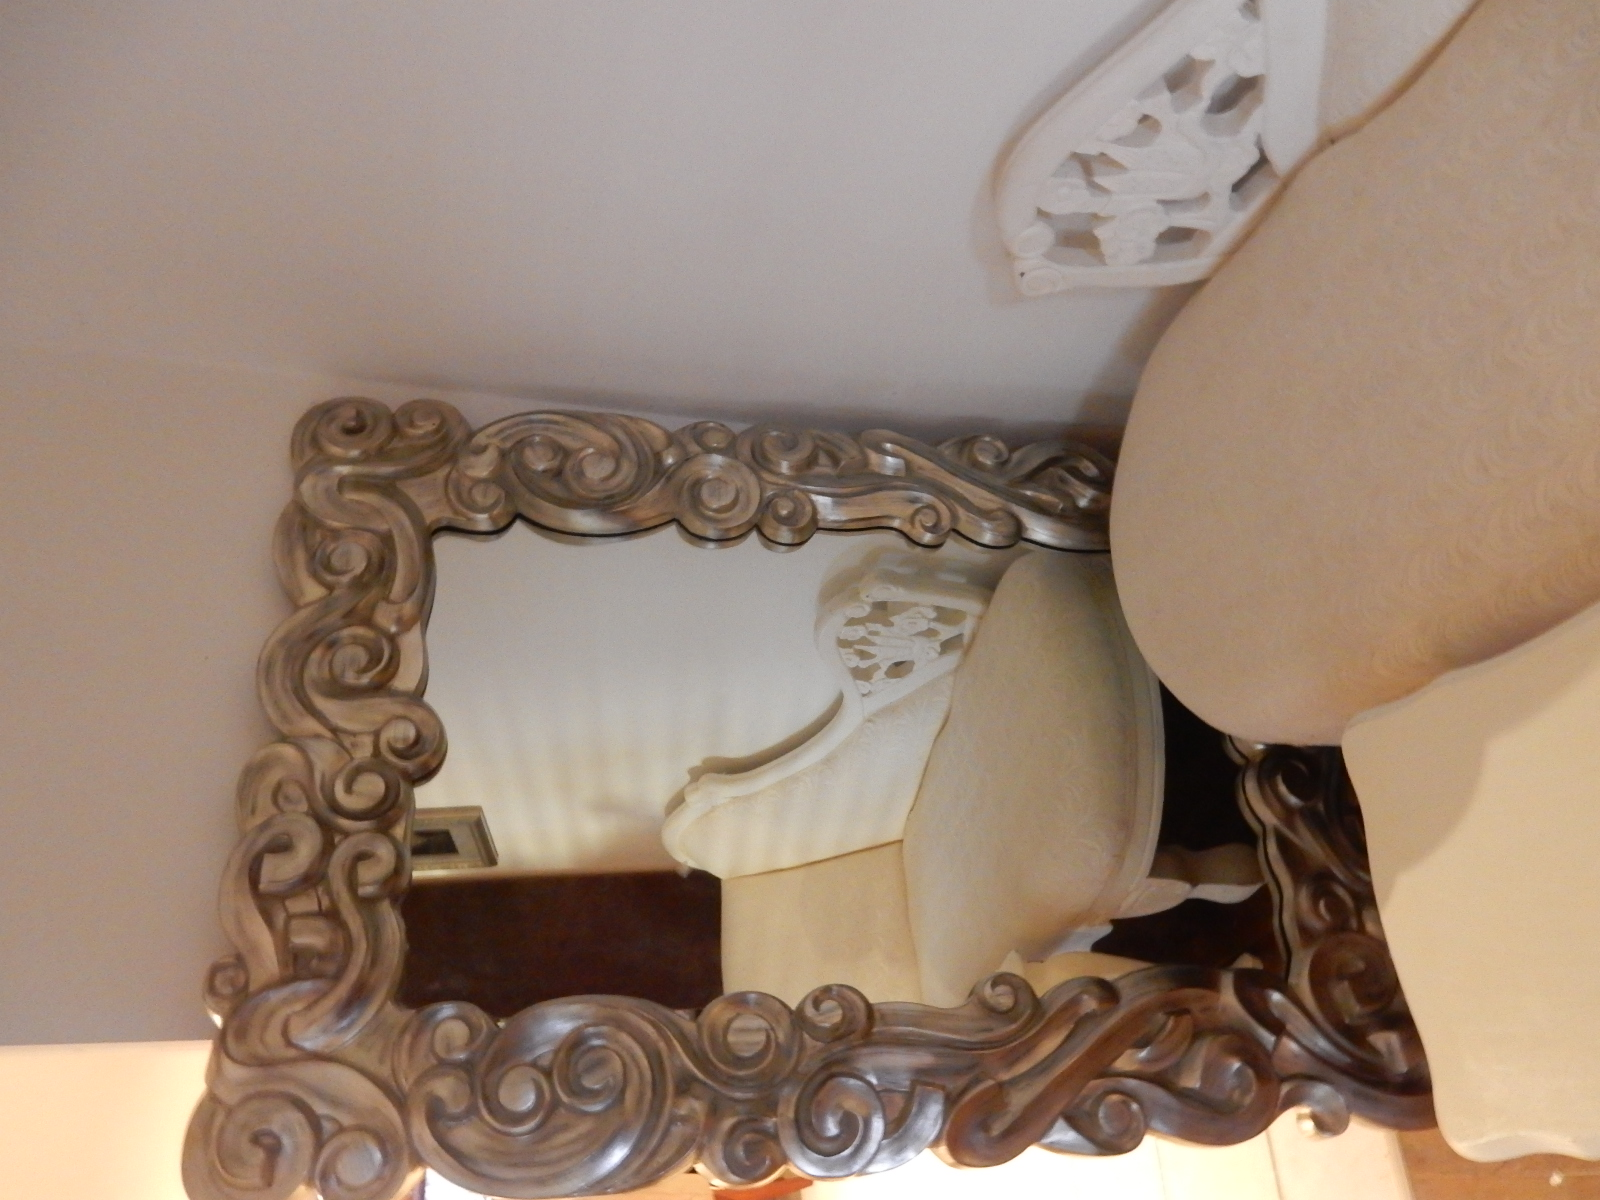 Giant full figure size mirror